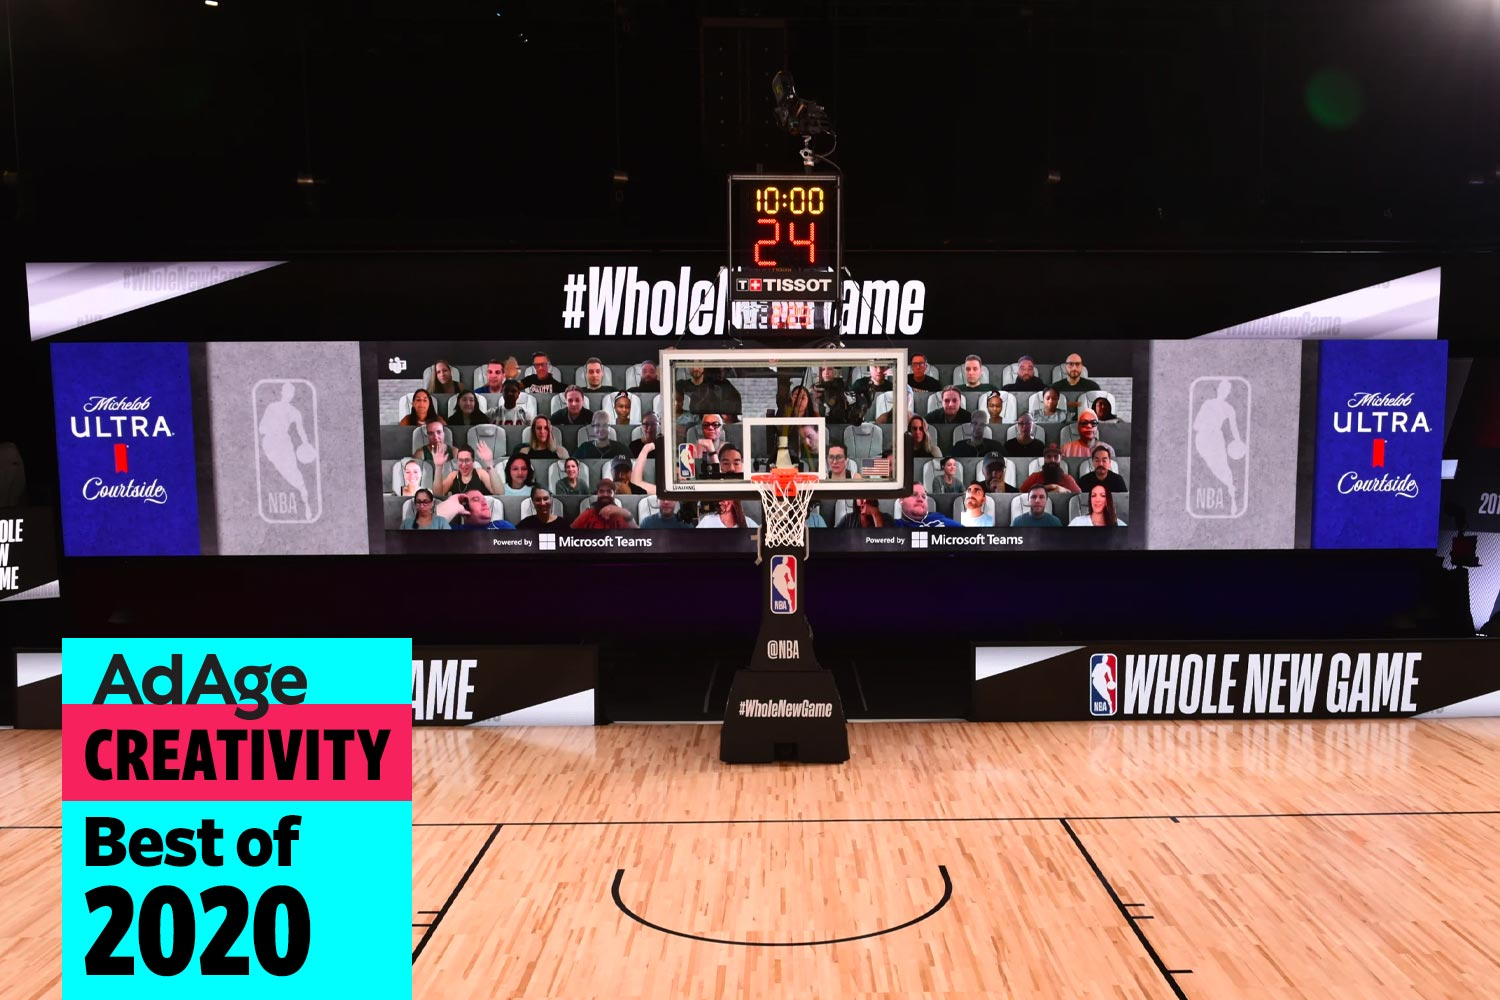 Best of 2020 No. 23: Microsoft and Michelob Ultra bring NBA fans 'courtside' in the Orlando Bubble